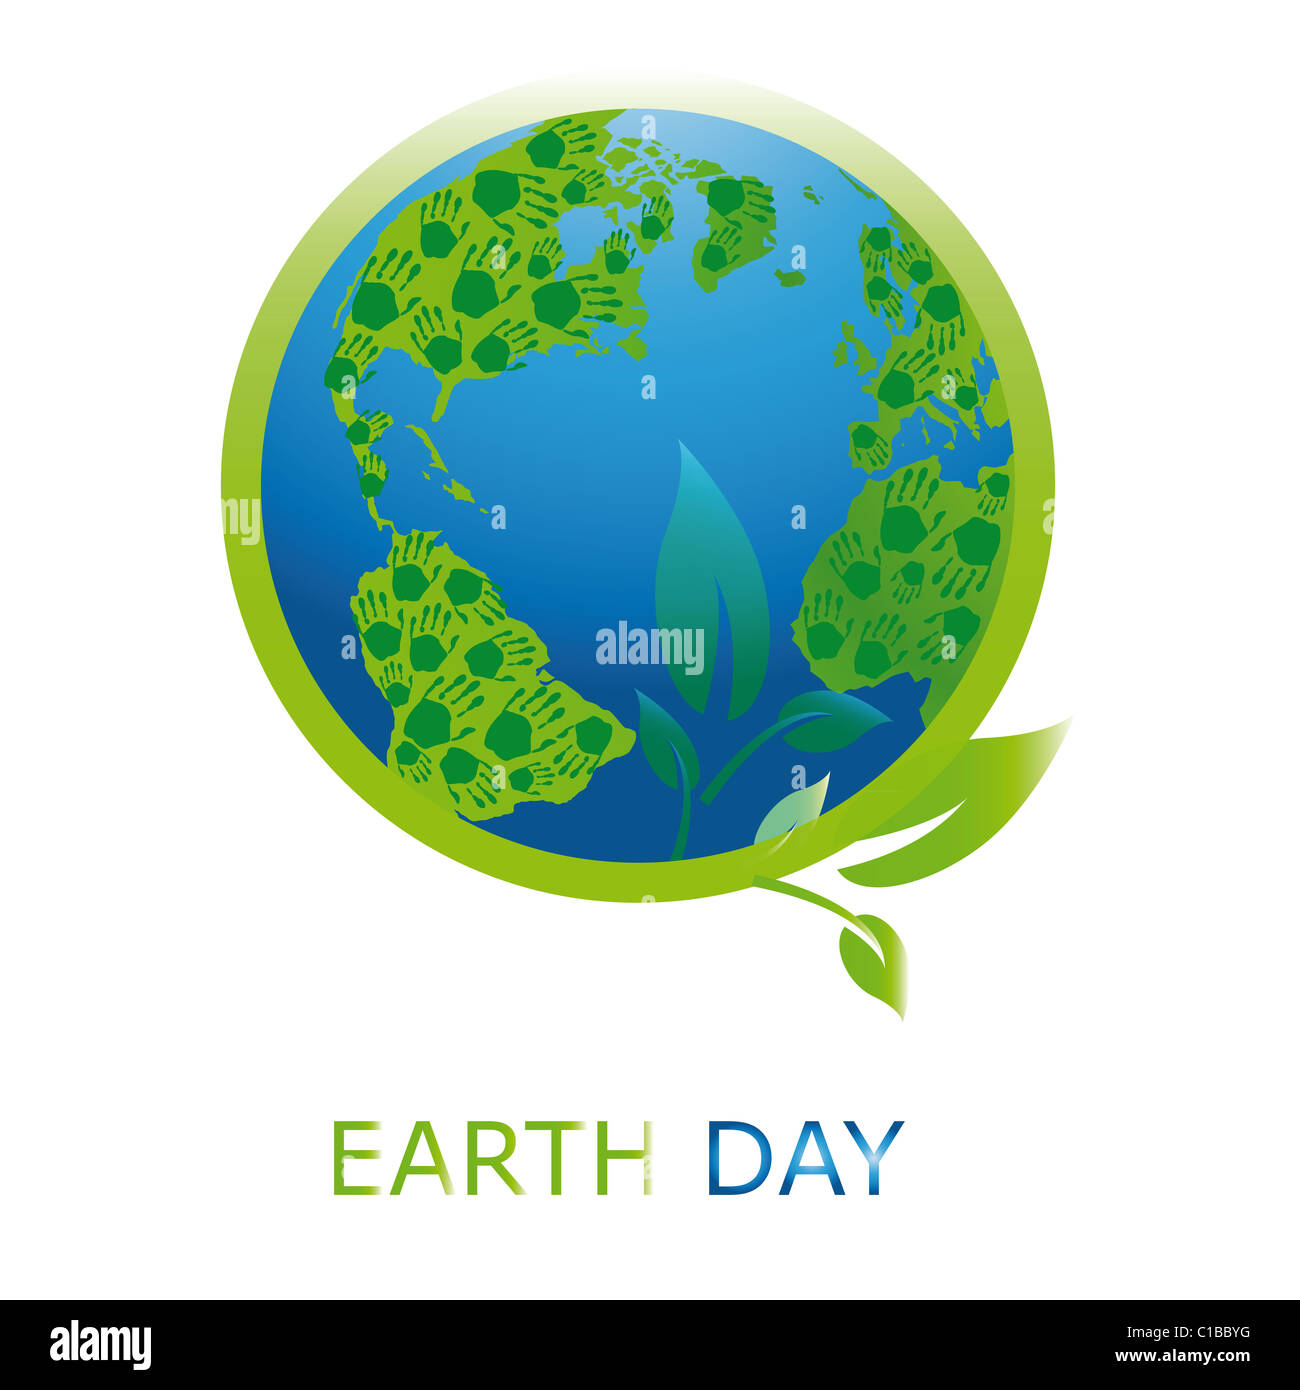 Planet symbol on earth day stock photo royalty free image planet symbol on earth day buycottarizona